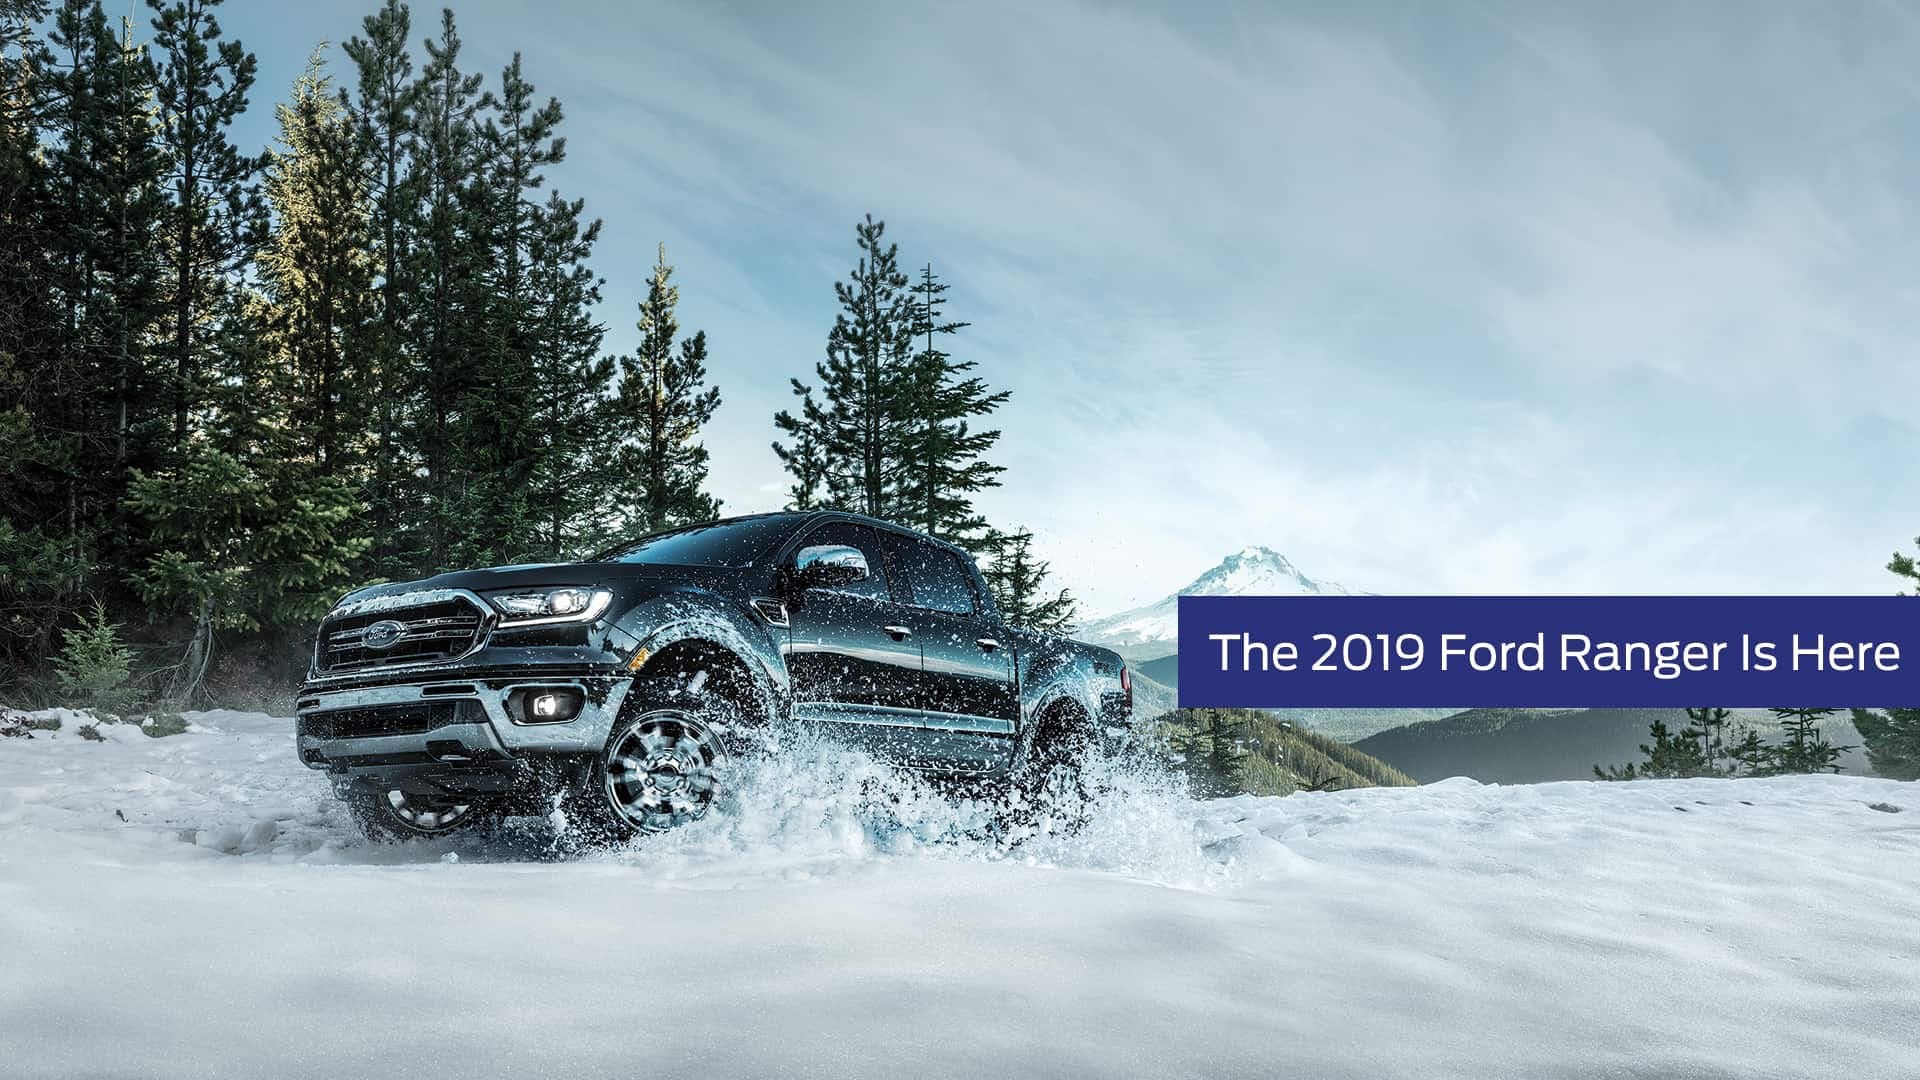 The 2019 Ford Ranger Is Here